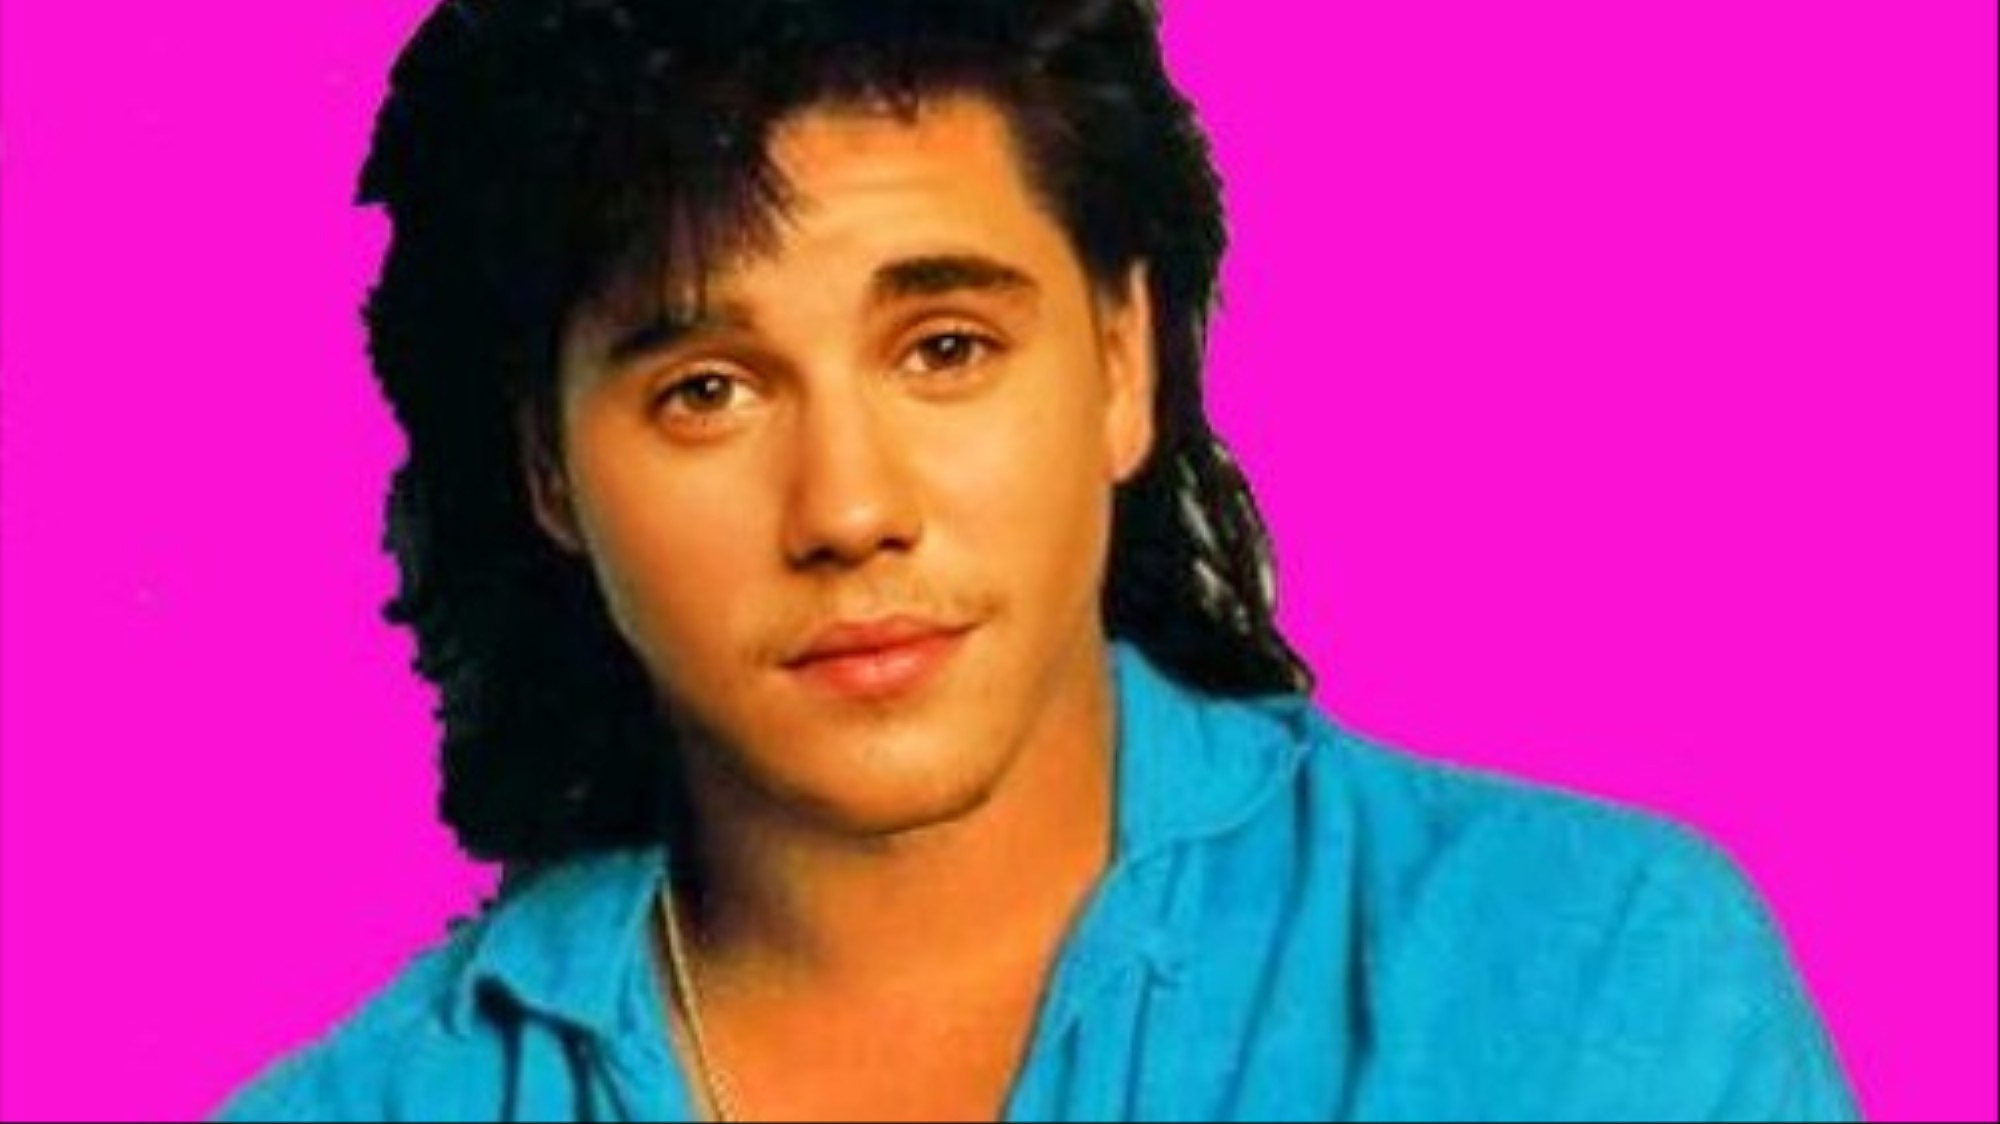 We Got Extra Geeky with the Guy Who Made That 80s Justin Bieber